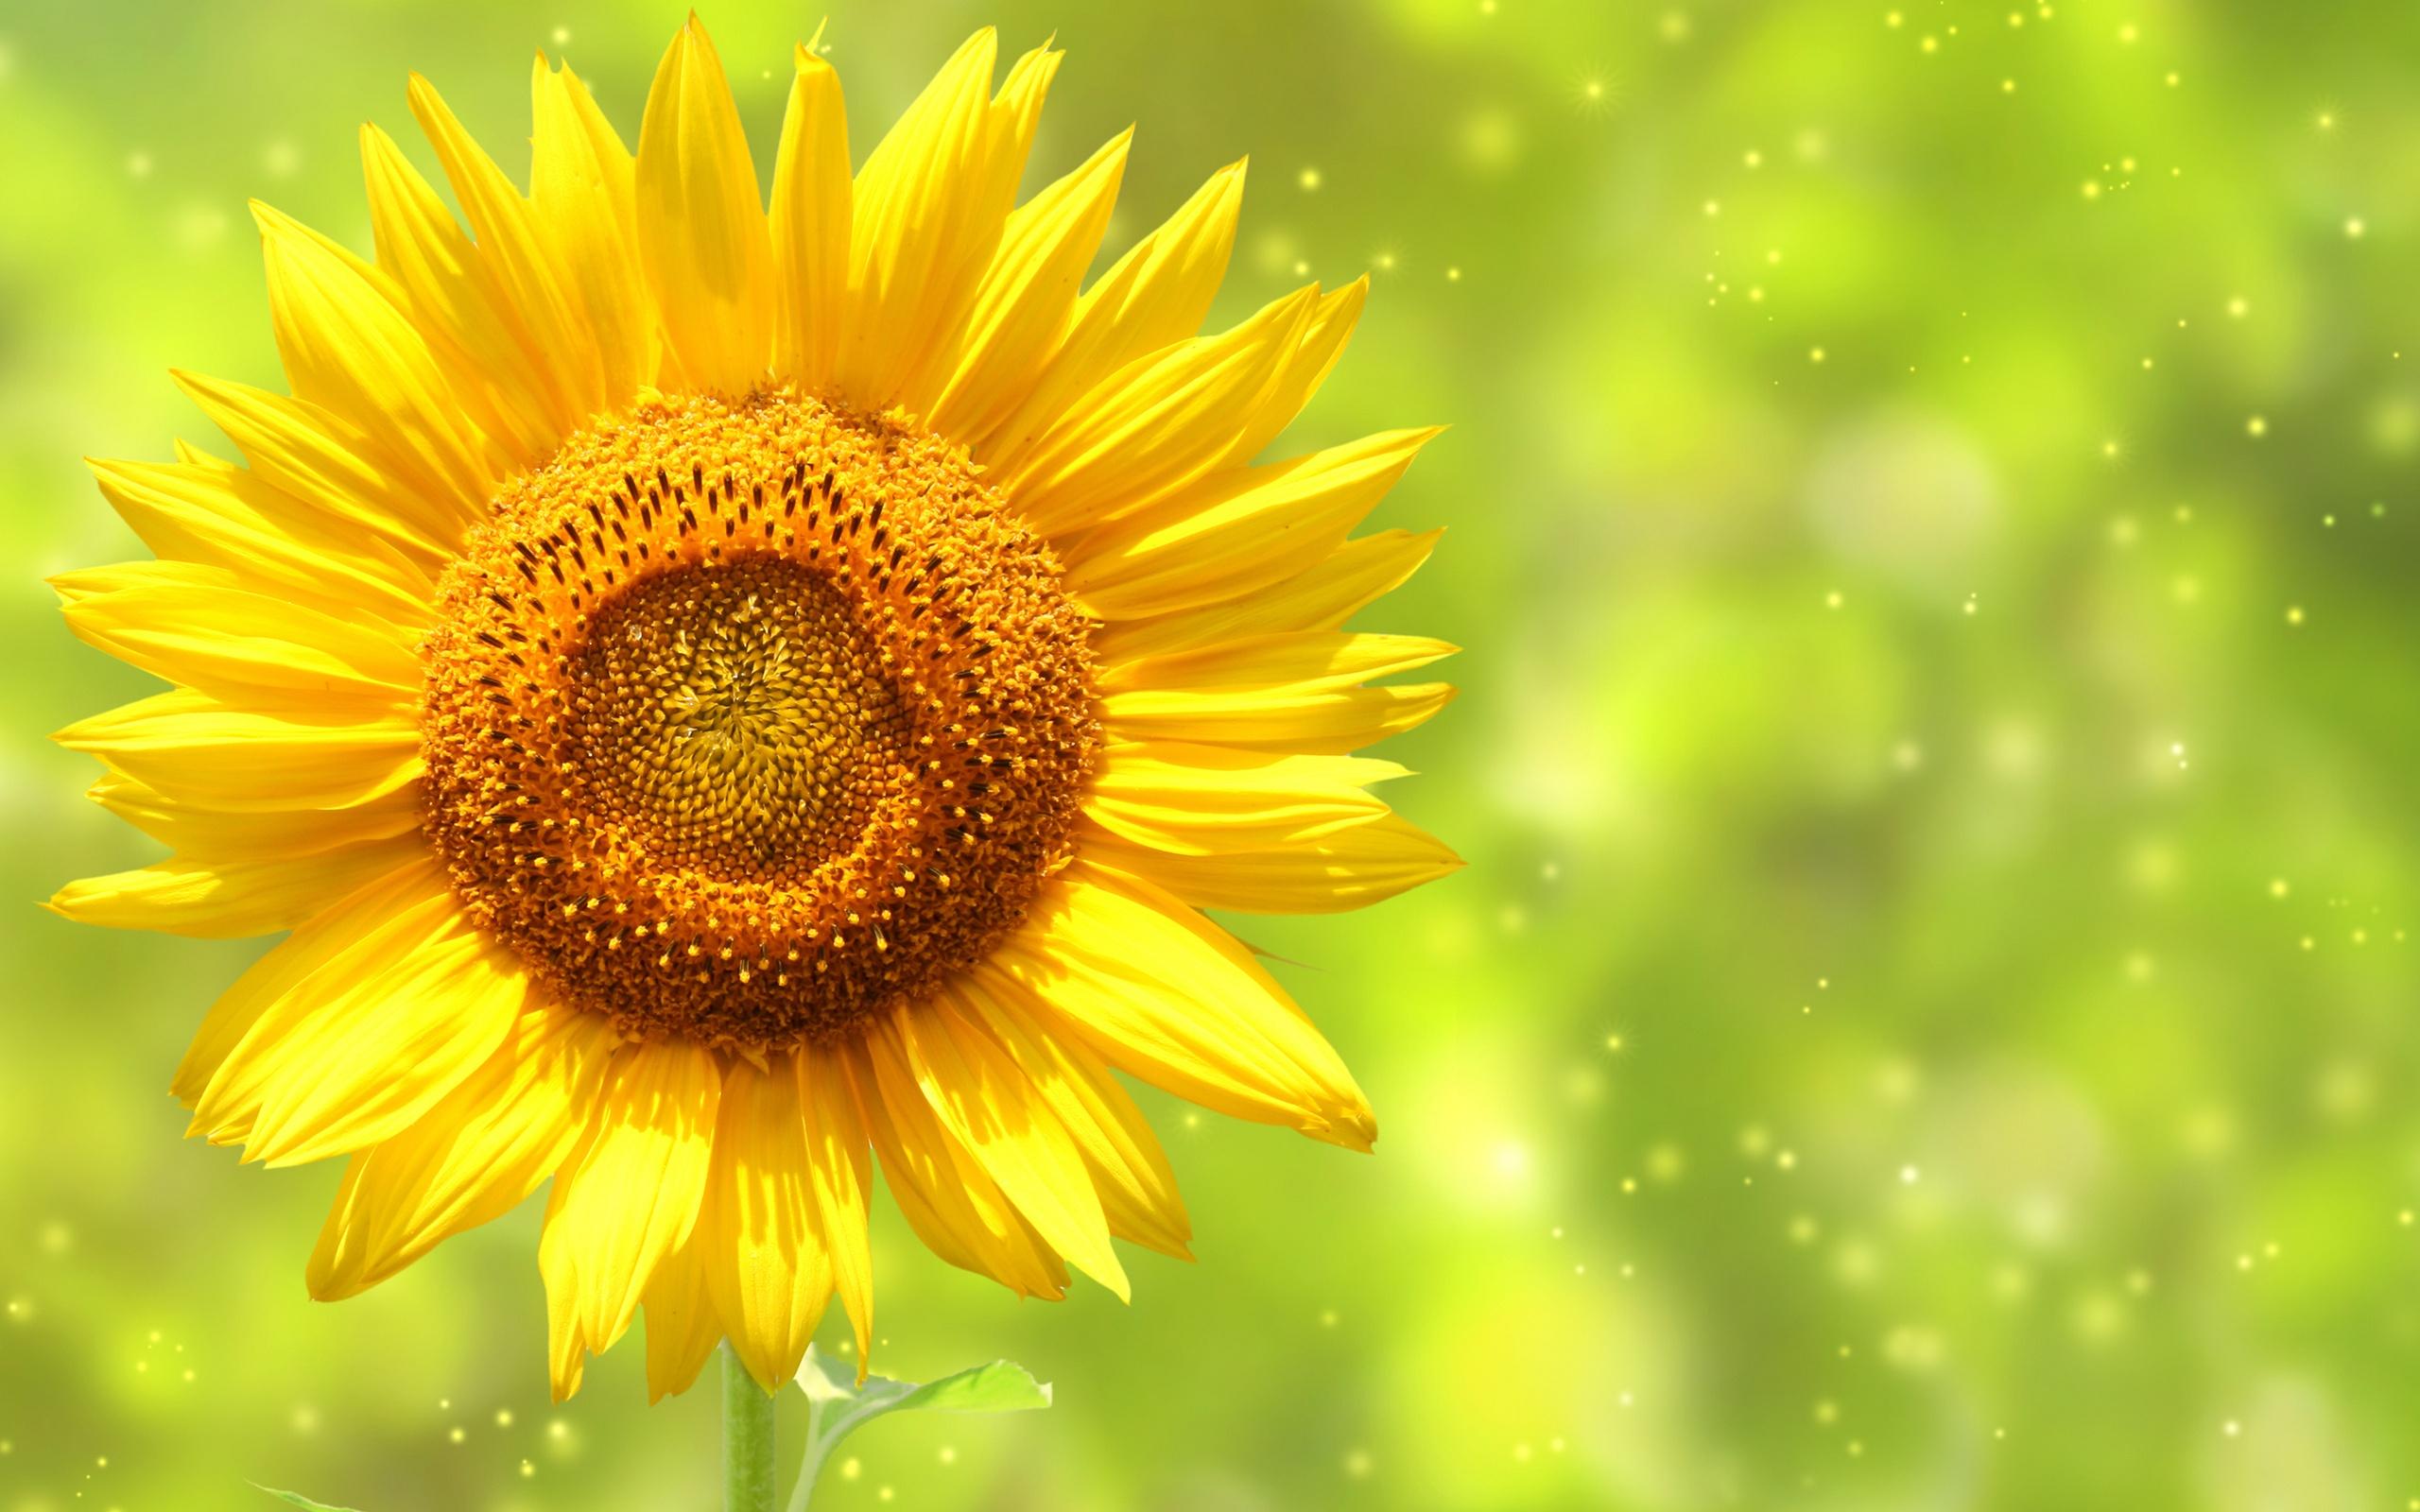 Cool Sunflower Wallpaper